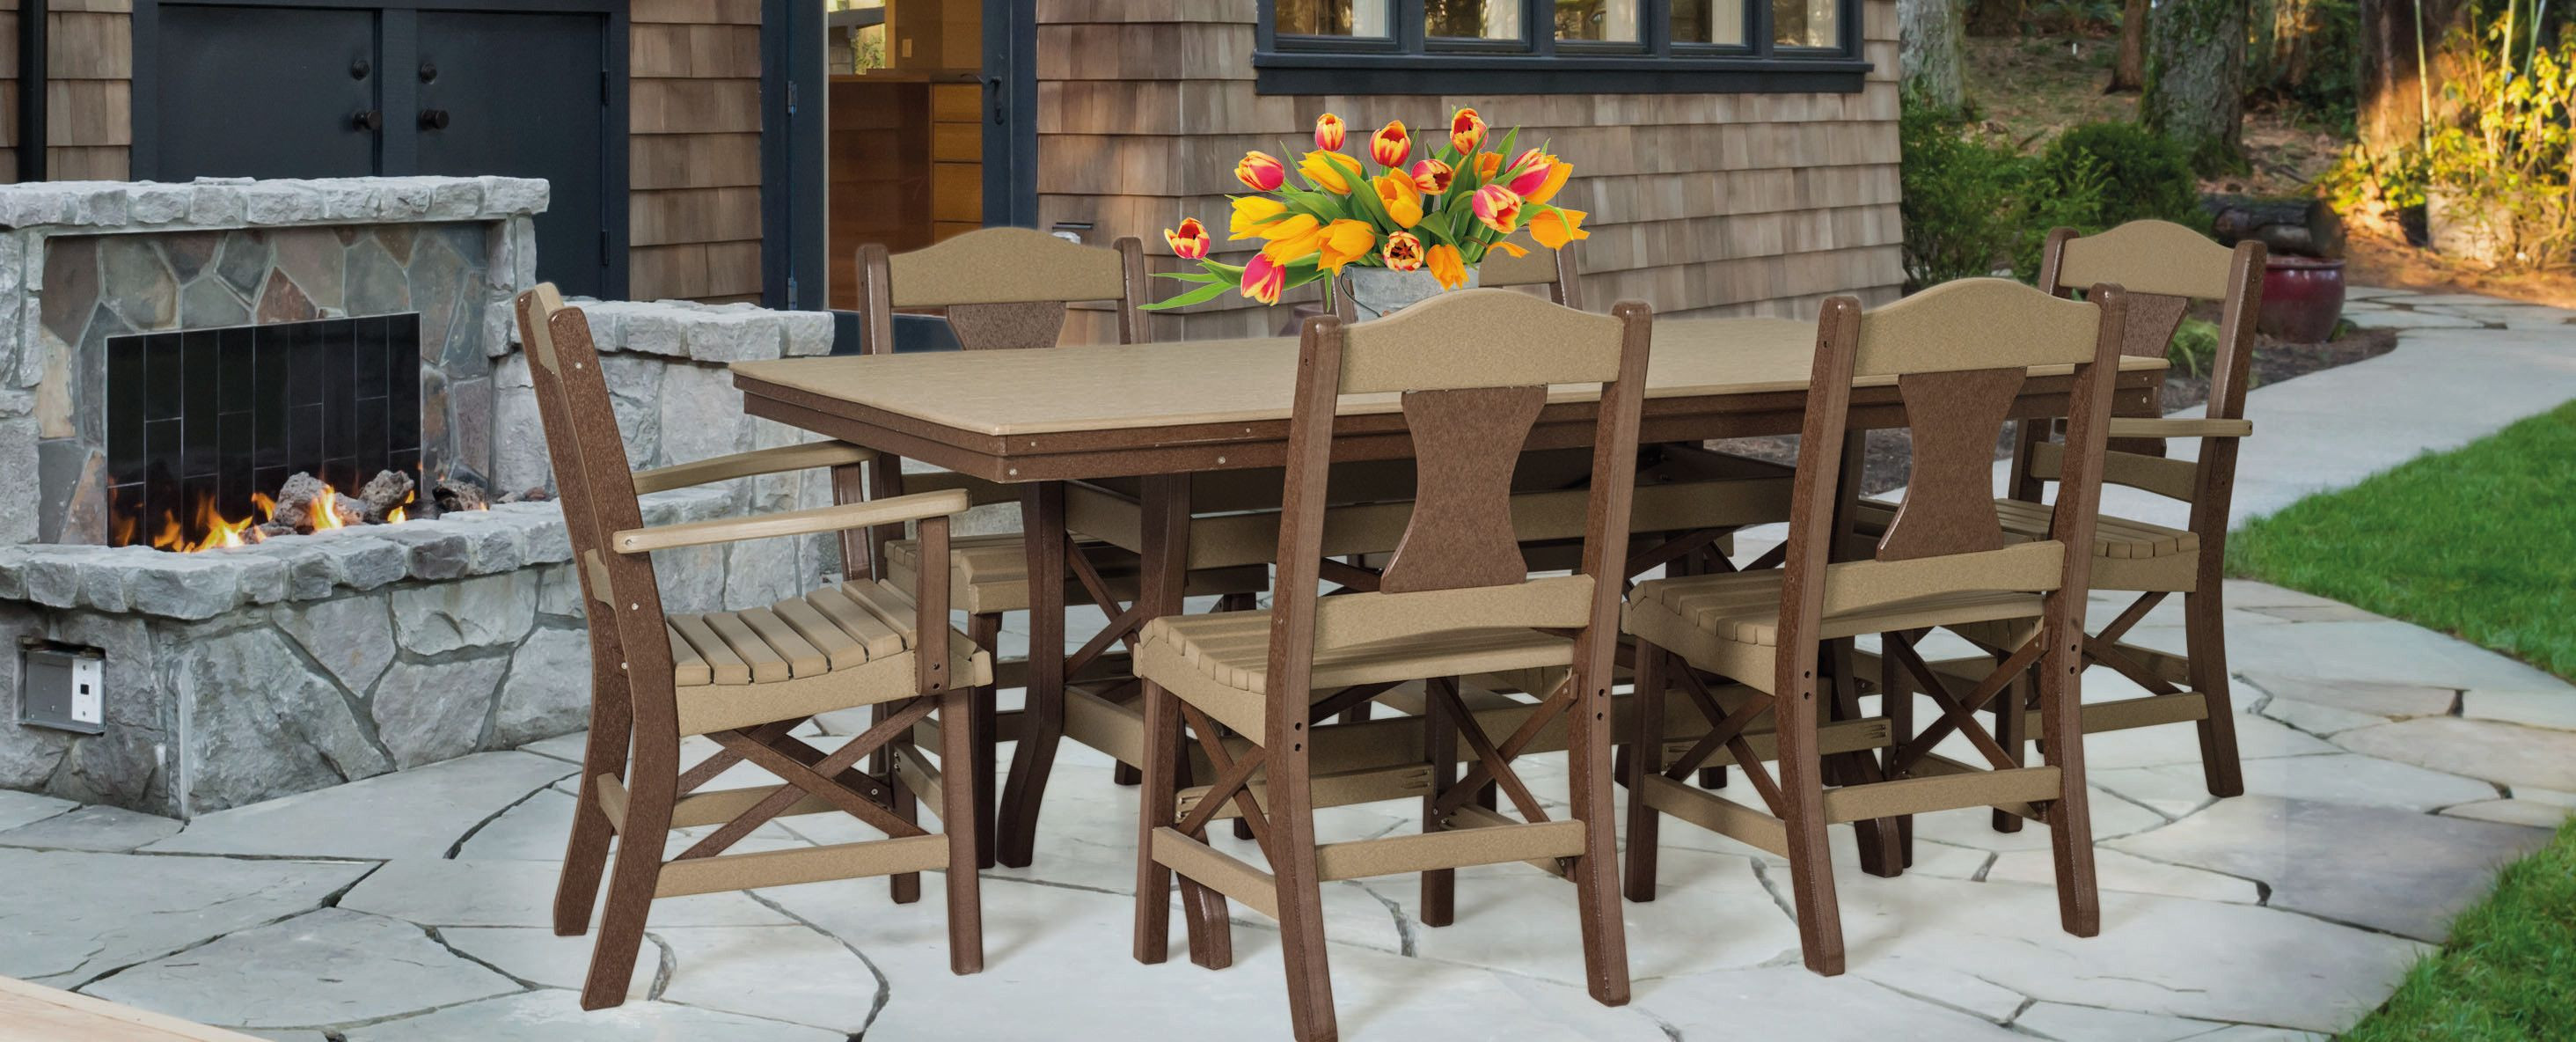 amish-patio-table